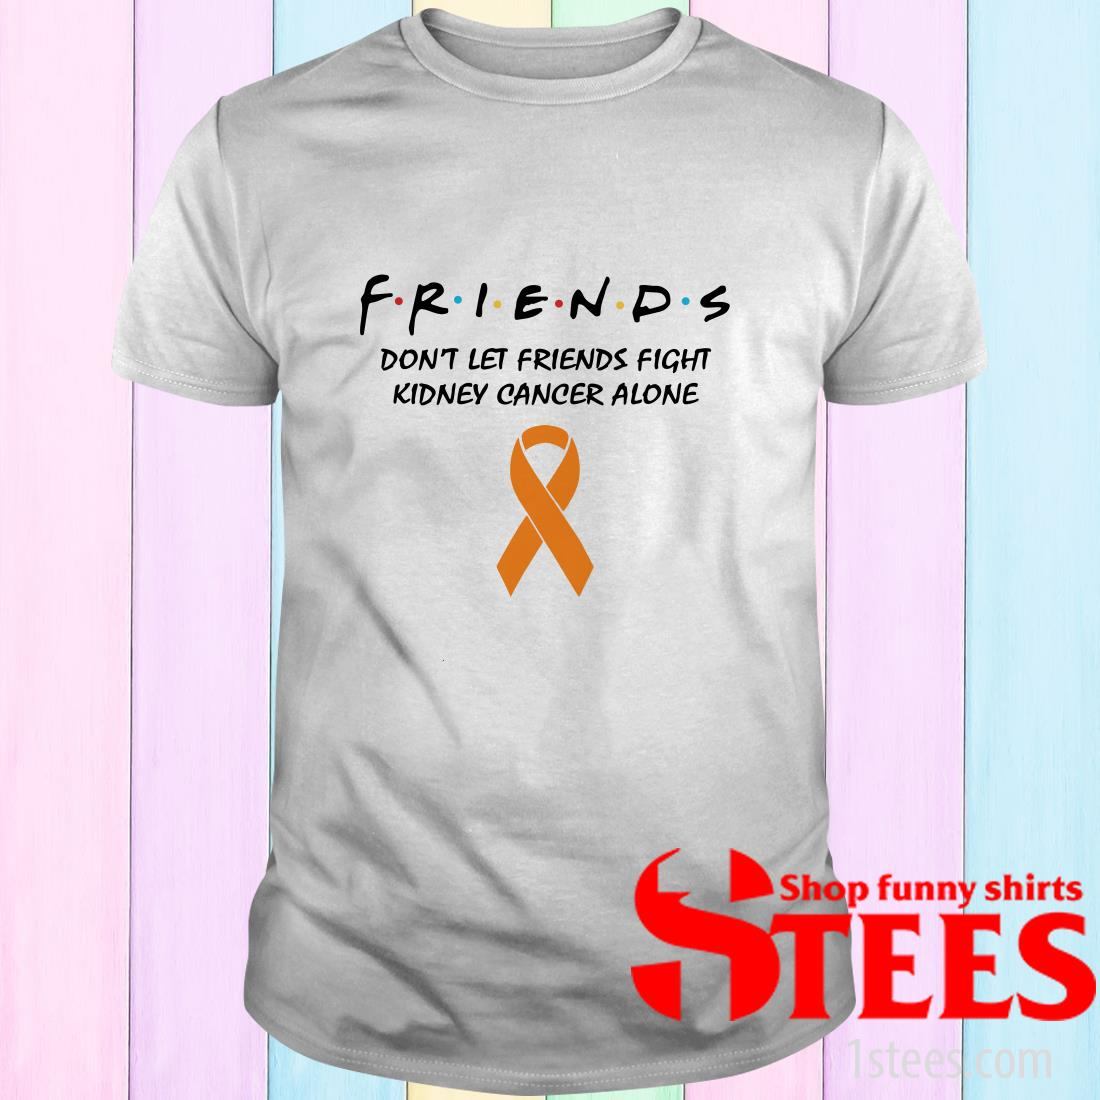 Friends Don't Let Friends Fight Kidney Cancer Alone Shirt